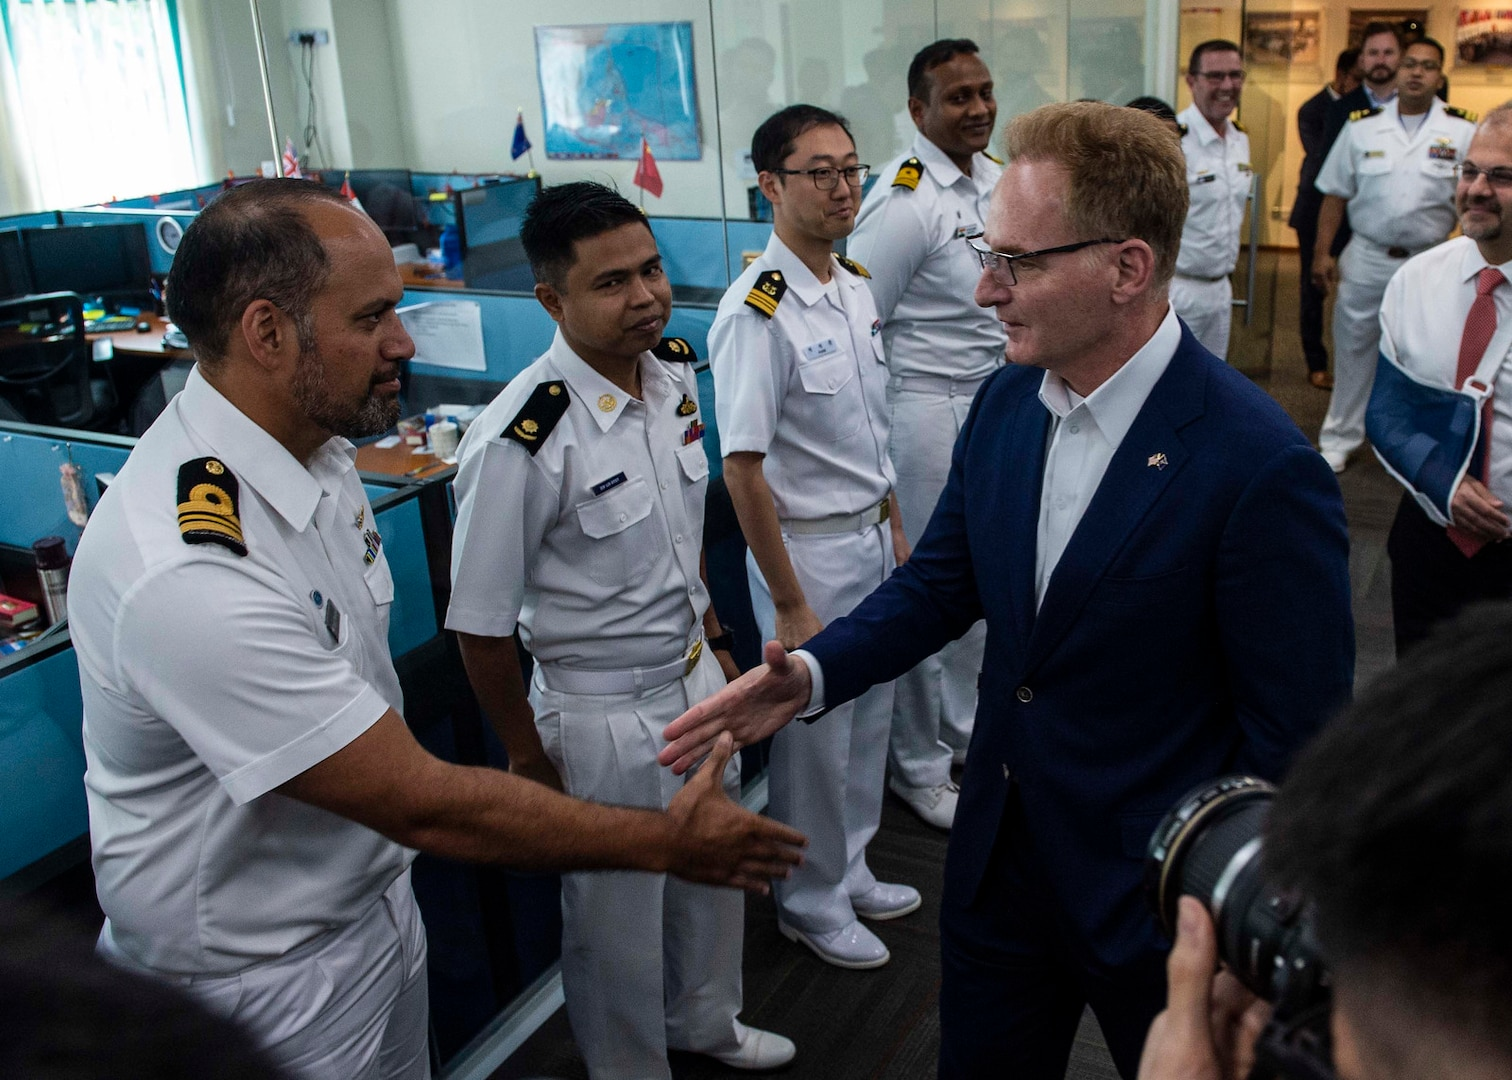 200114-N-FV739-0037\rCHANGI NAVAL BASE, Singapore (Jan. 14, 2019) Acting Secretary of the Navy Thomas B. Modly meets with international liaison officers during a tour of the Information Fusion Centre. Modly�s visit to Singapore is part of a multination visit to the U.S. Indo-Pacific areas of responsibility focused on reinforcing existing partnerships and visiting Sailors and Marines providing forward presence. (U.S. Navy photo by Mass Communication Specialist 2nd Class Christopher Veloicaza/Released)